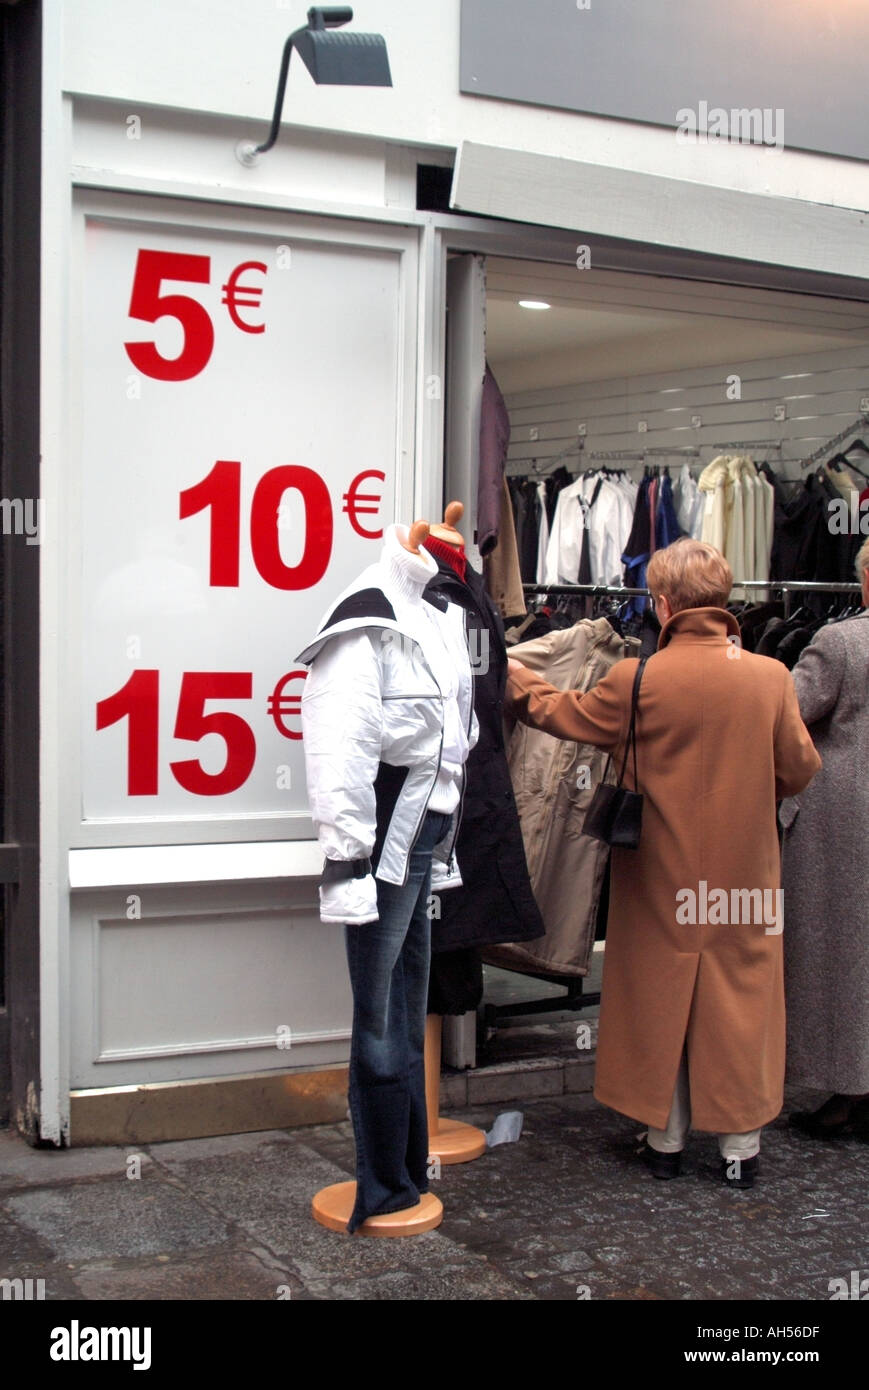 Paris Les Halles clothing shop entrance displaying large sign with price indicators in Euro currency Stock Photo